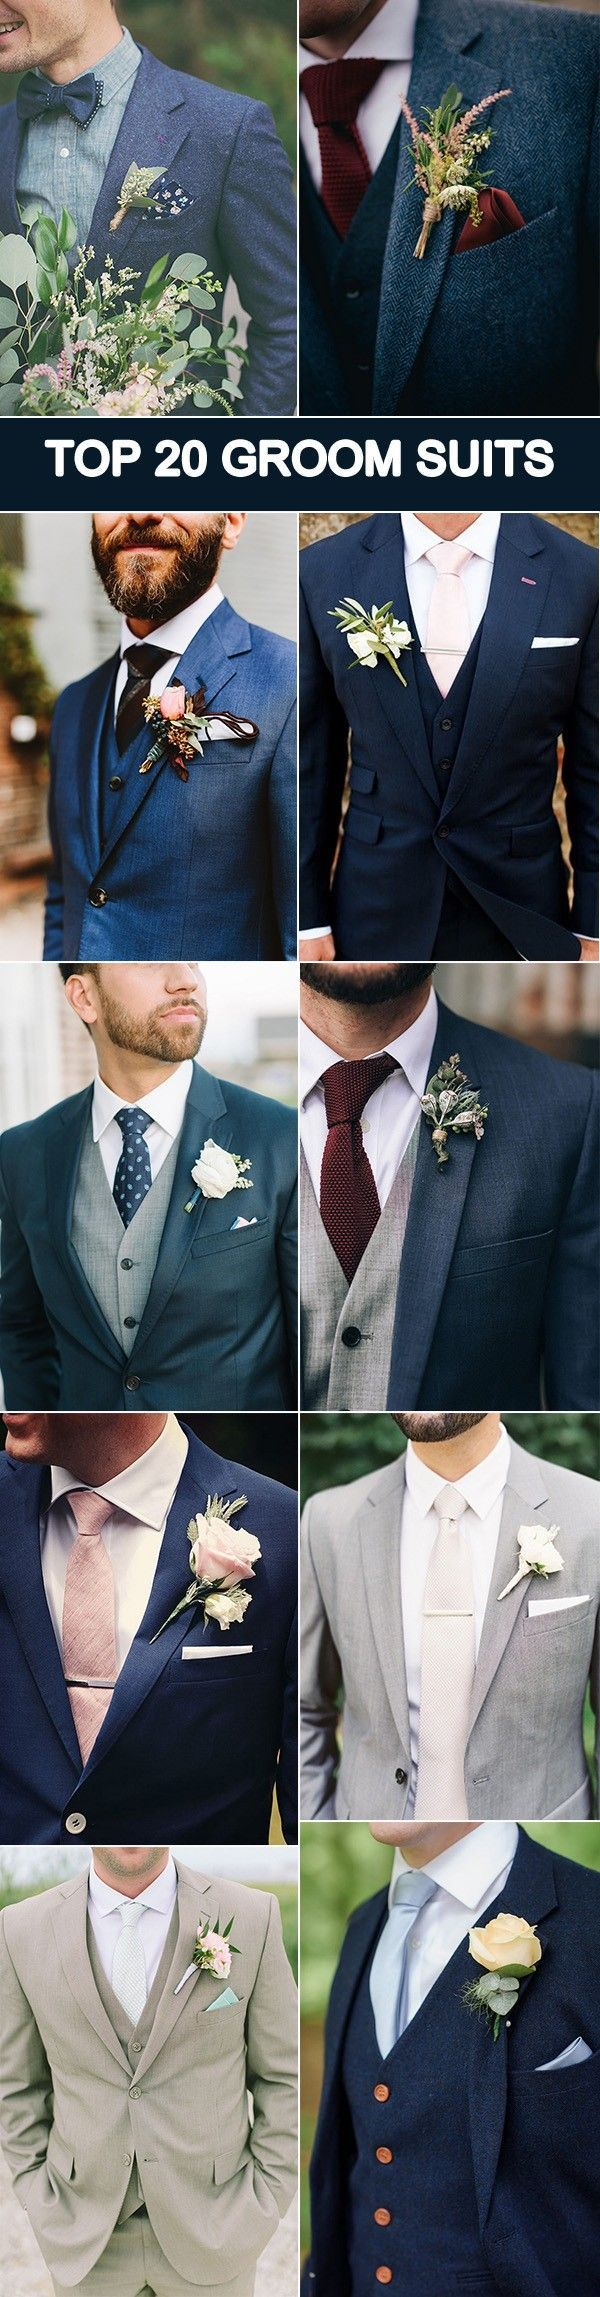 popular groom suit ideas for your big day weddings wedding